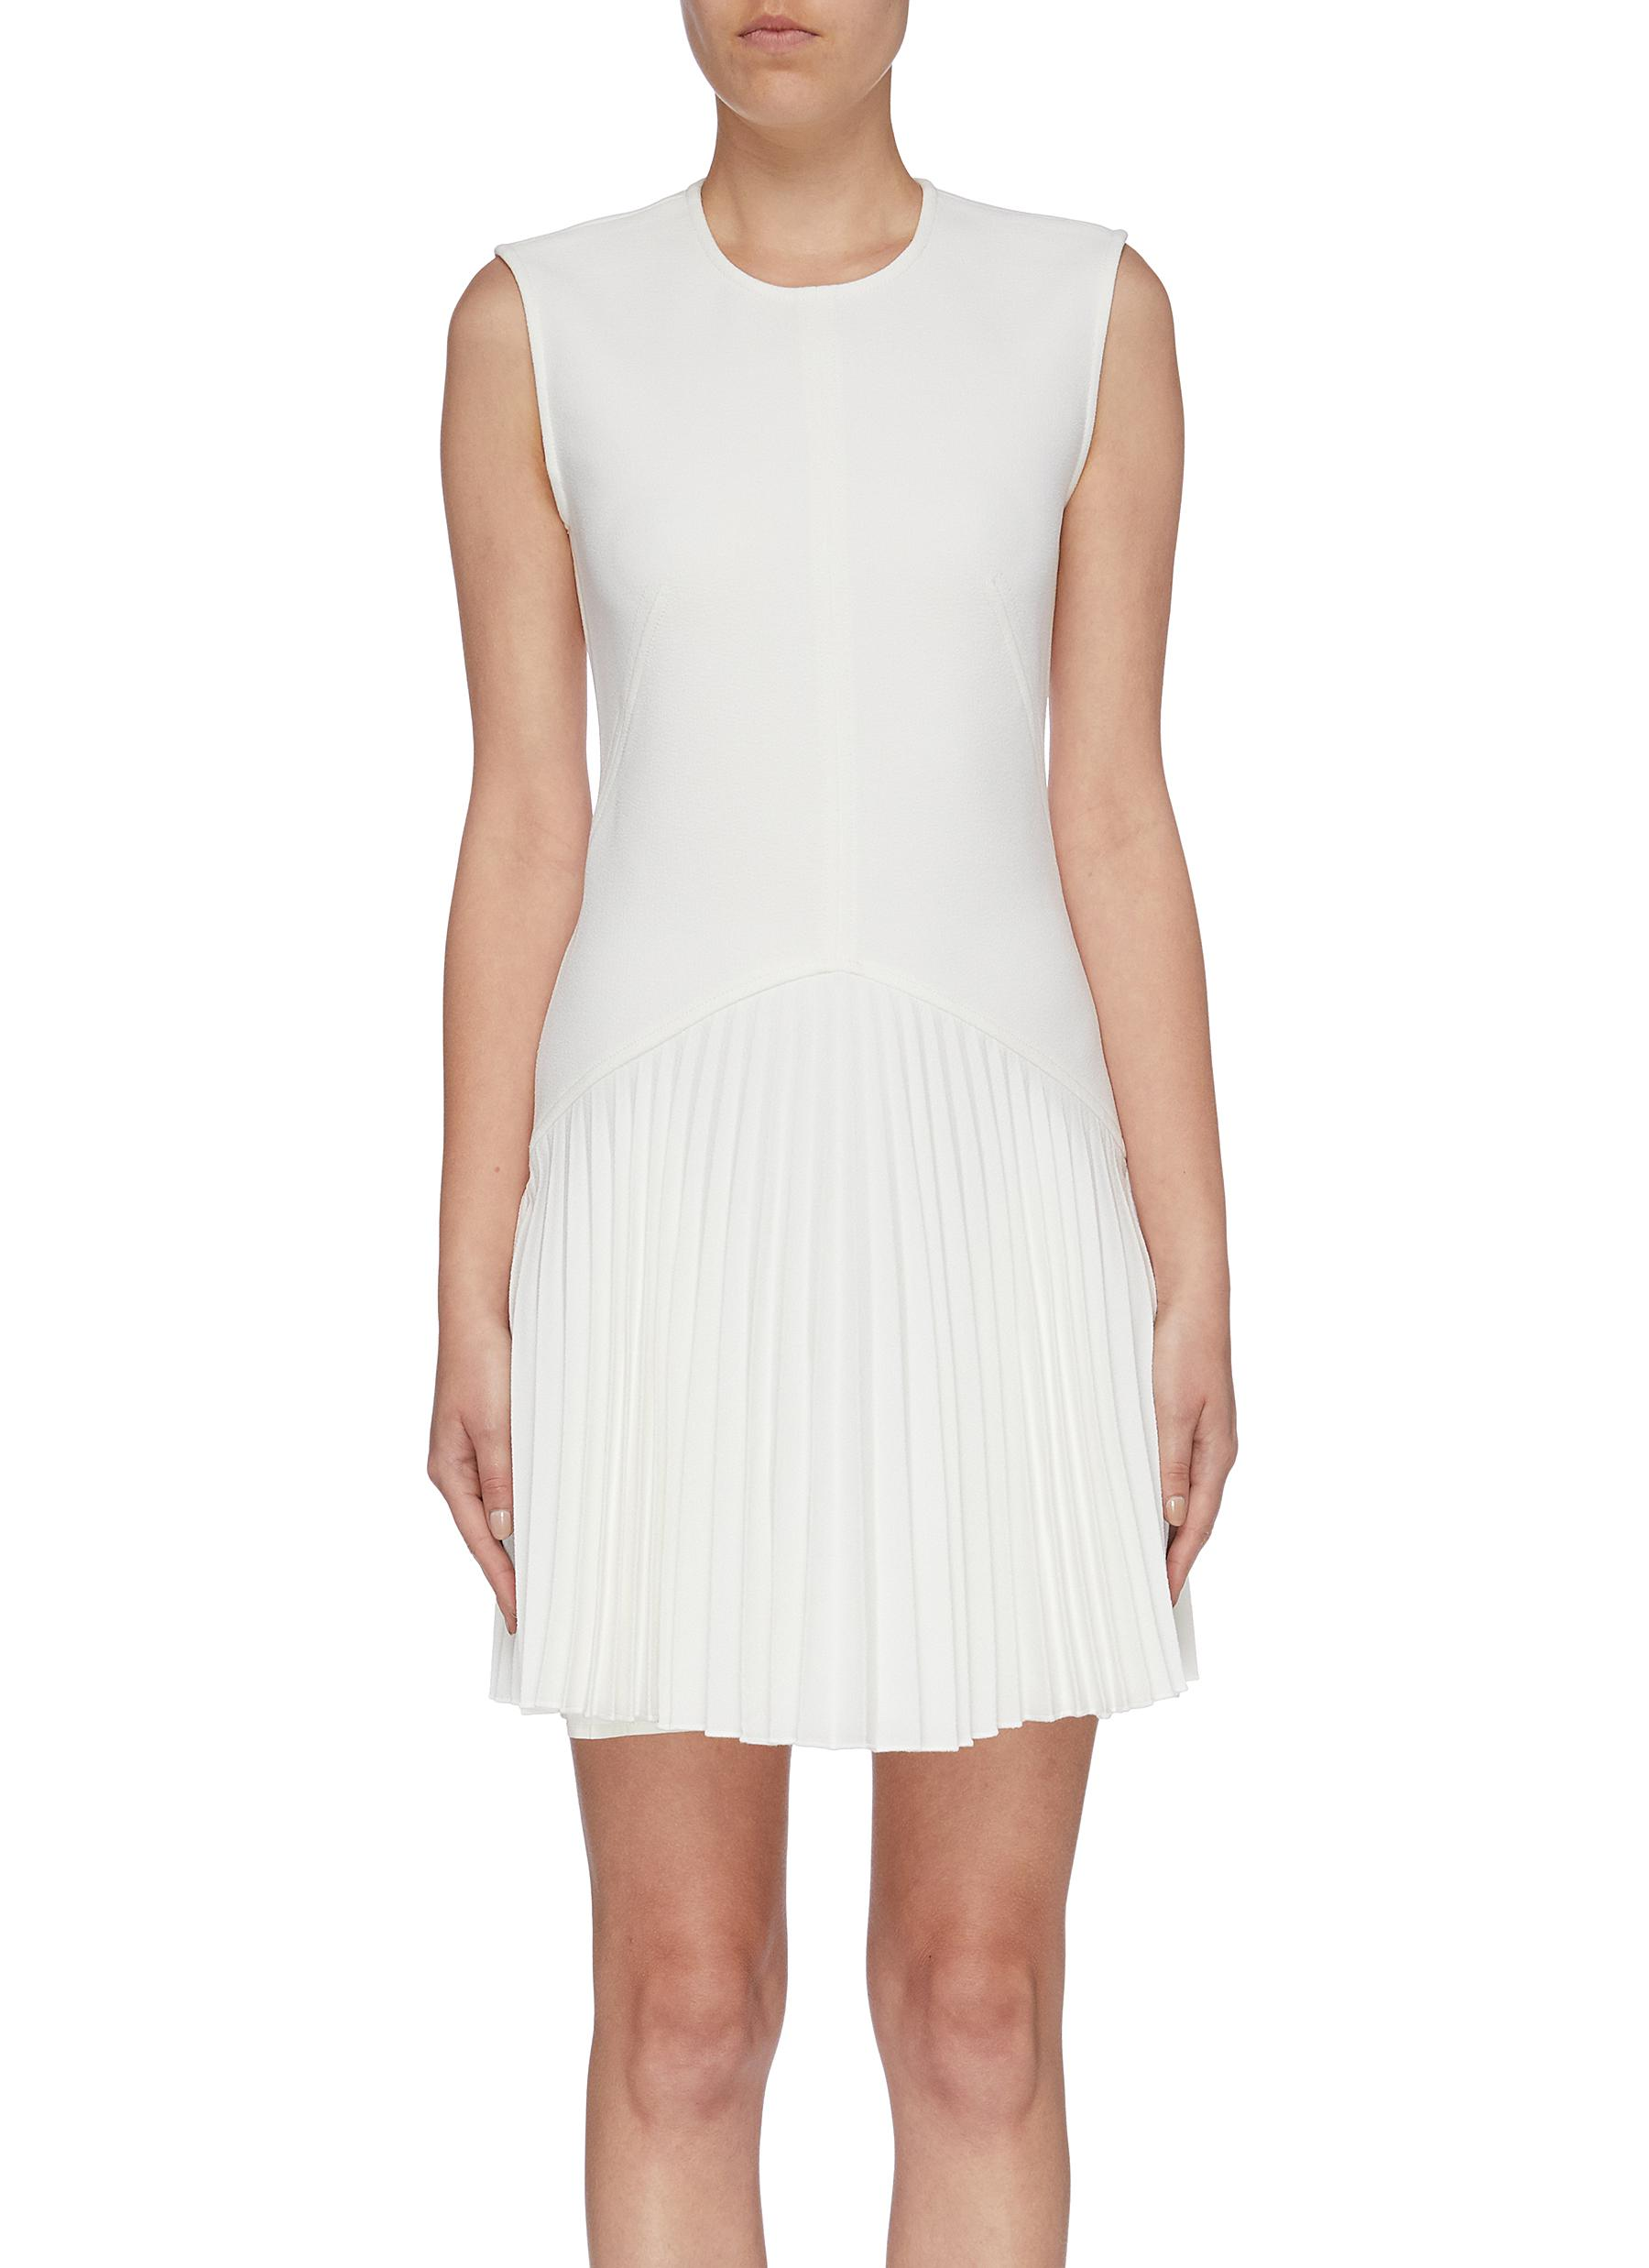 Annex pleated hem sleeveless crepe mini dress by Dion Lee